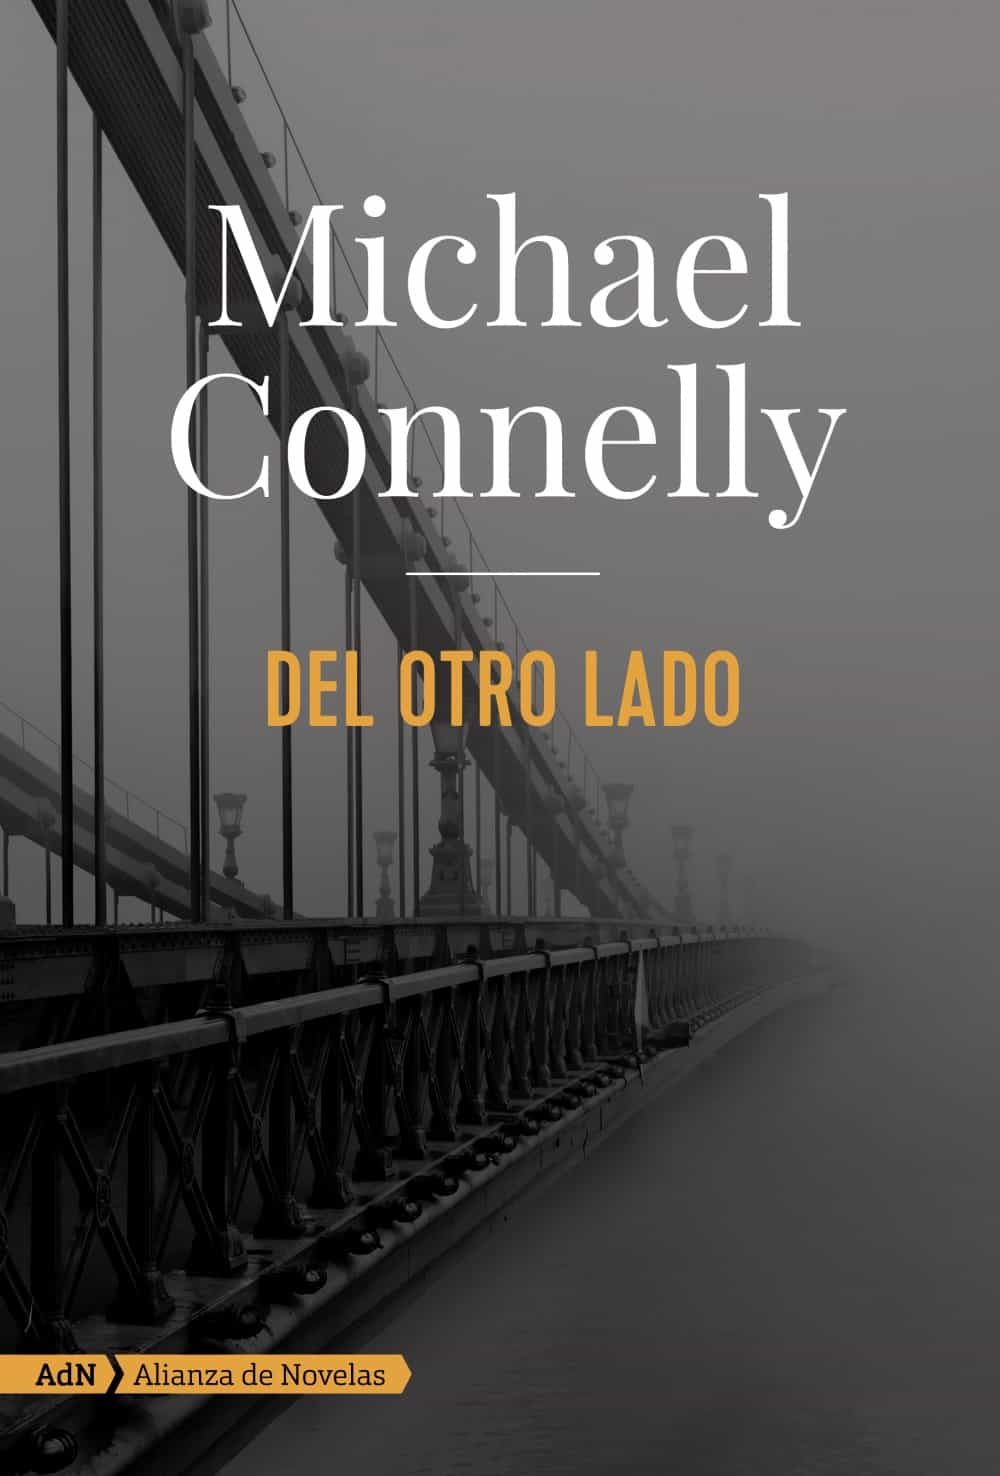 Michael Connelly Libros Del Otro Lado (serie Mickey Haller 6) | Michael Connelly